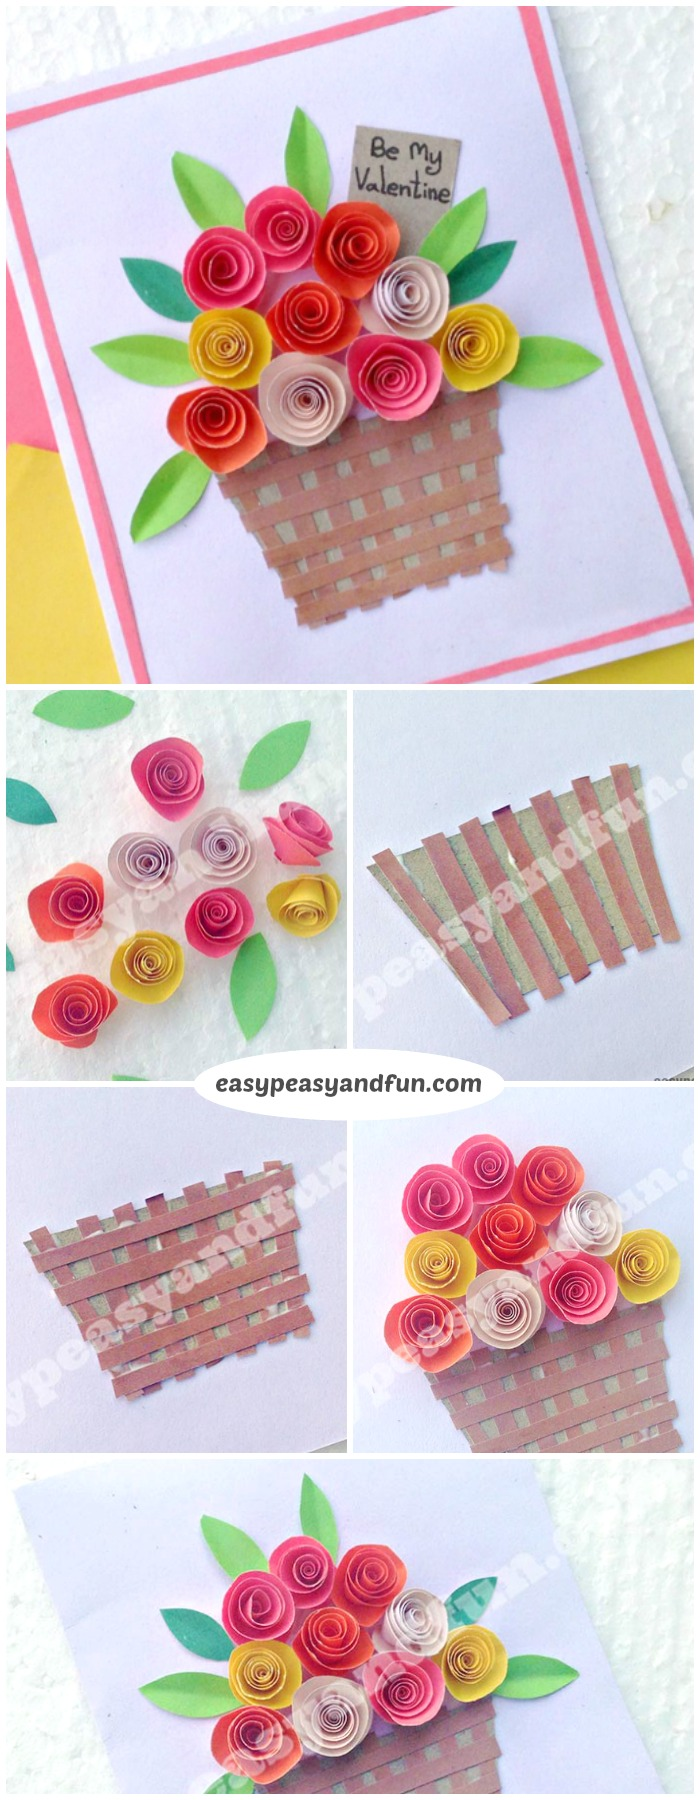 Diy rolled paper roses valentines day or mothers day card easy flower basket paper craft for kids super simple spring craft project for kids to make mightylinksfo